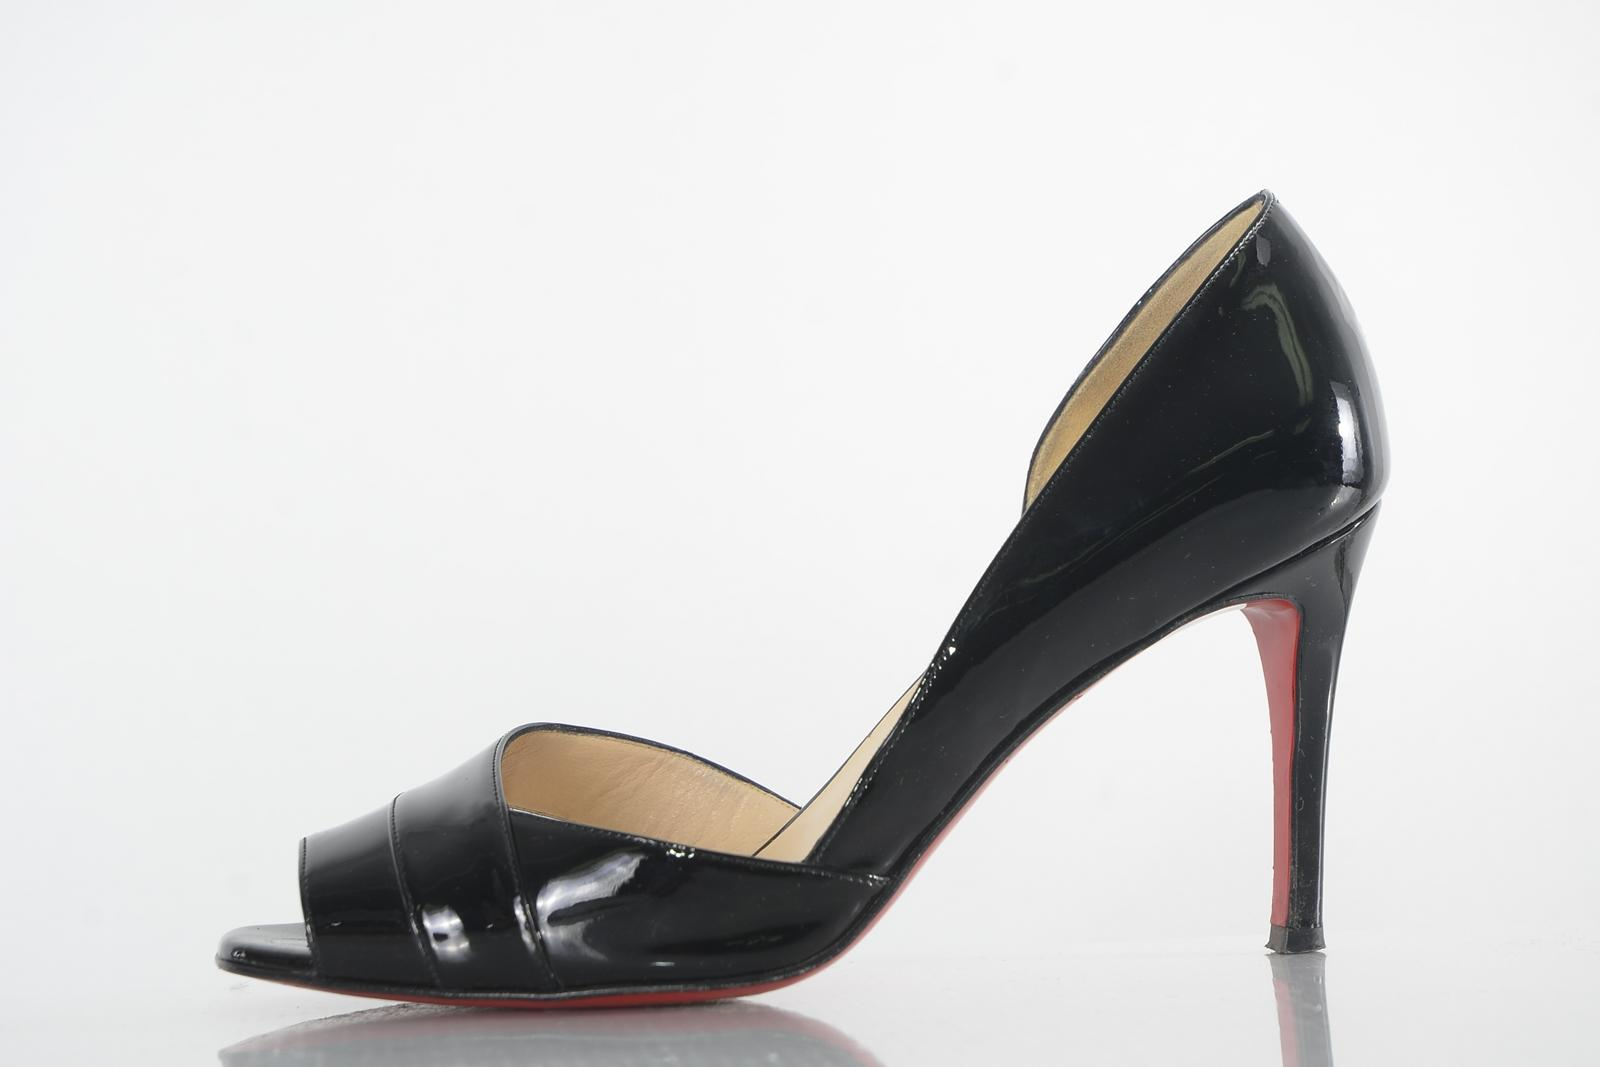 Christian Louboutin Escadre Peep-Toe Pumps outlet big sale buy cheap lowest price under $60 online free shipping explore order XBbreP